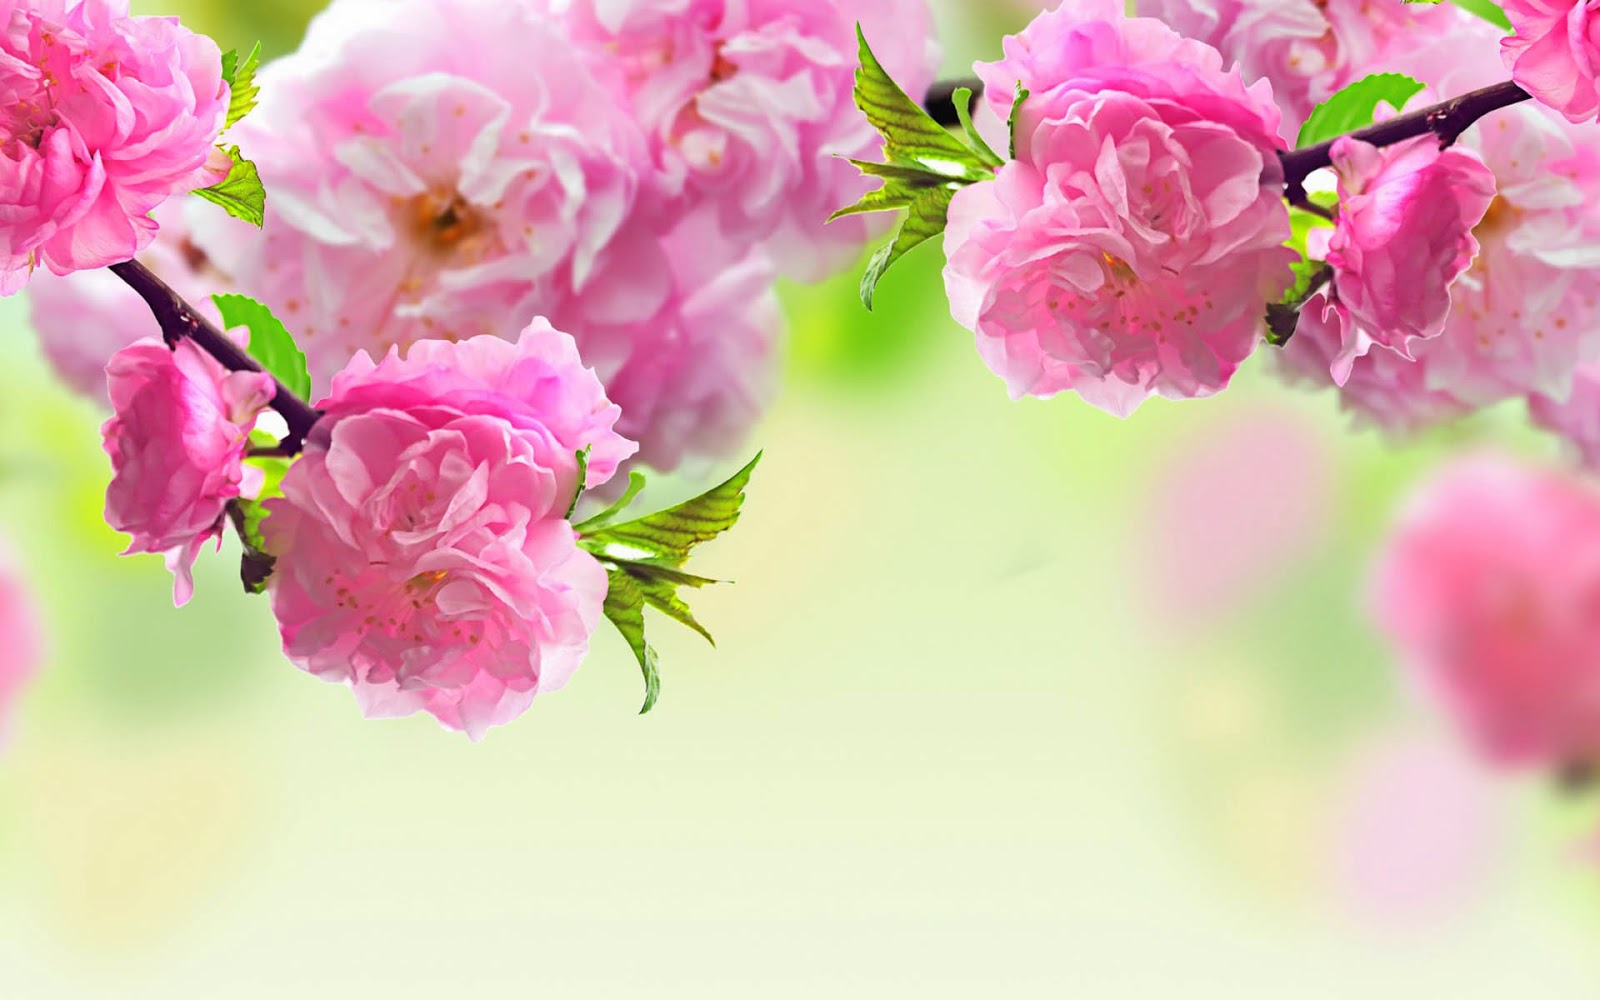 Spring Season 2014 Wallpapers HD Free Download